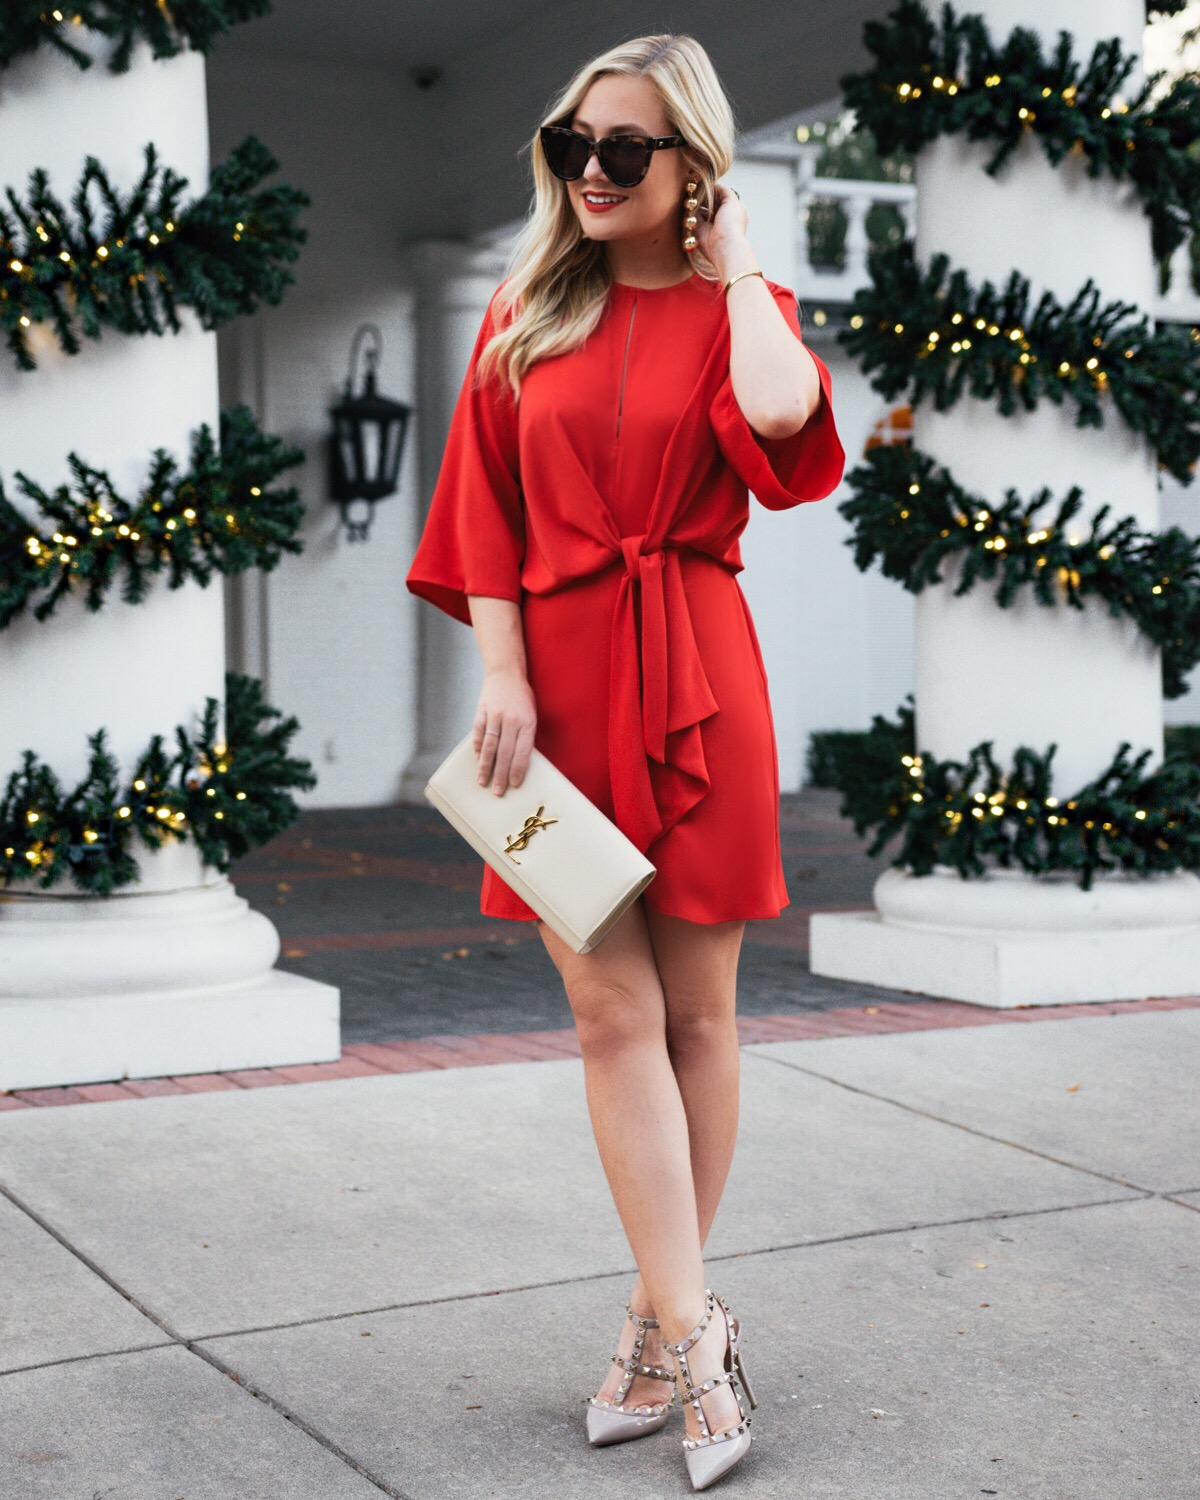 Seven Days of Holiday Dresses: Day 1